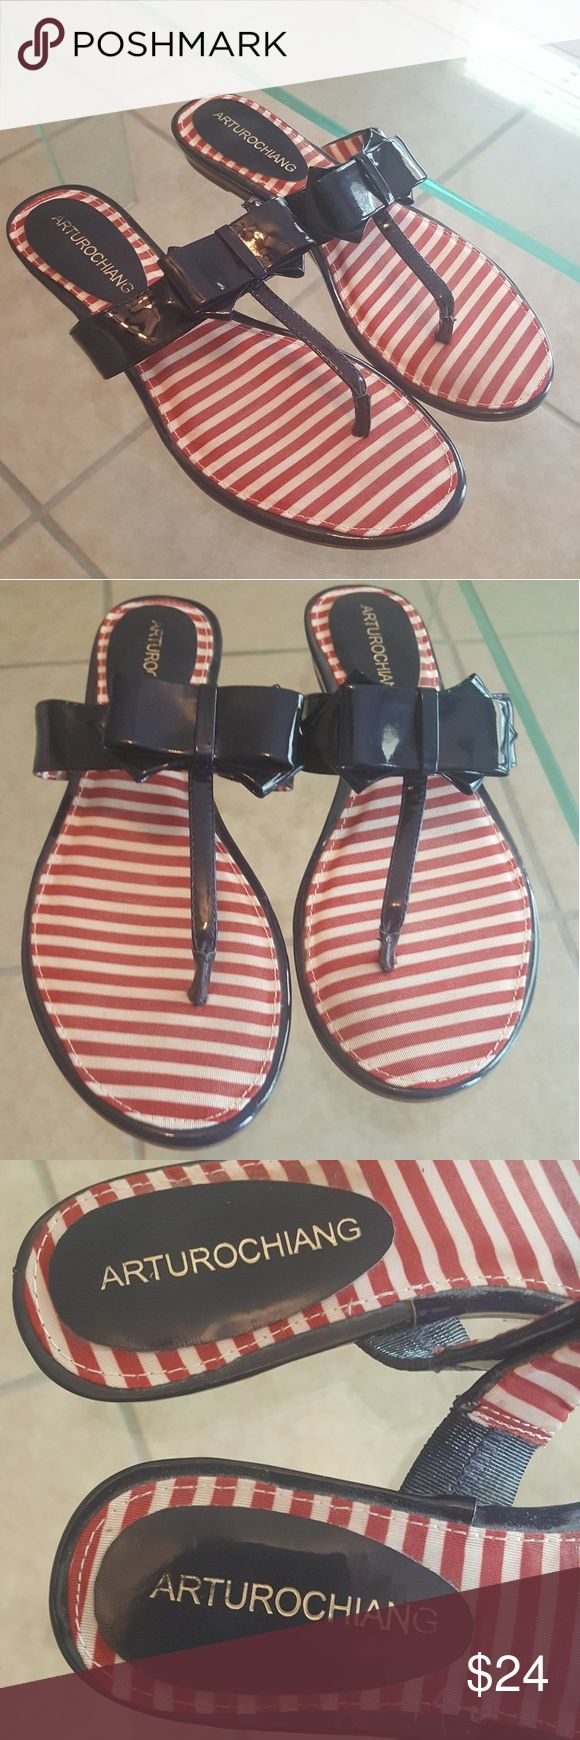 NEW! Arturo Chiang Navy & Red & White Sandals Adorable and barely worn. Navy patent leather and red and white stripes. Perfect for summer! Arturo Chiang Shoes Sandals